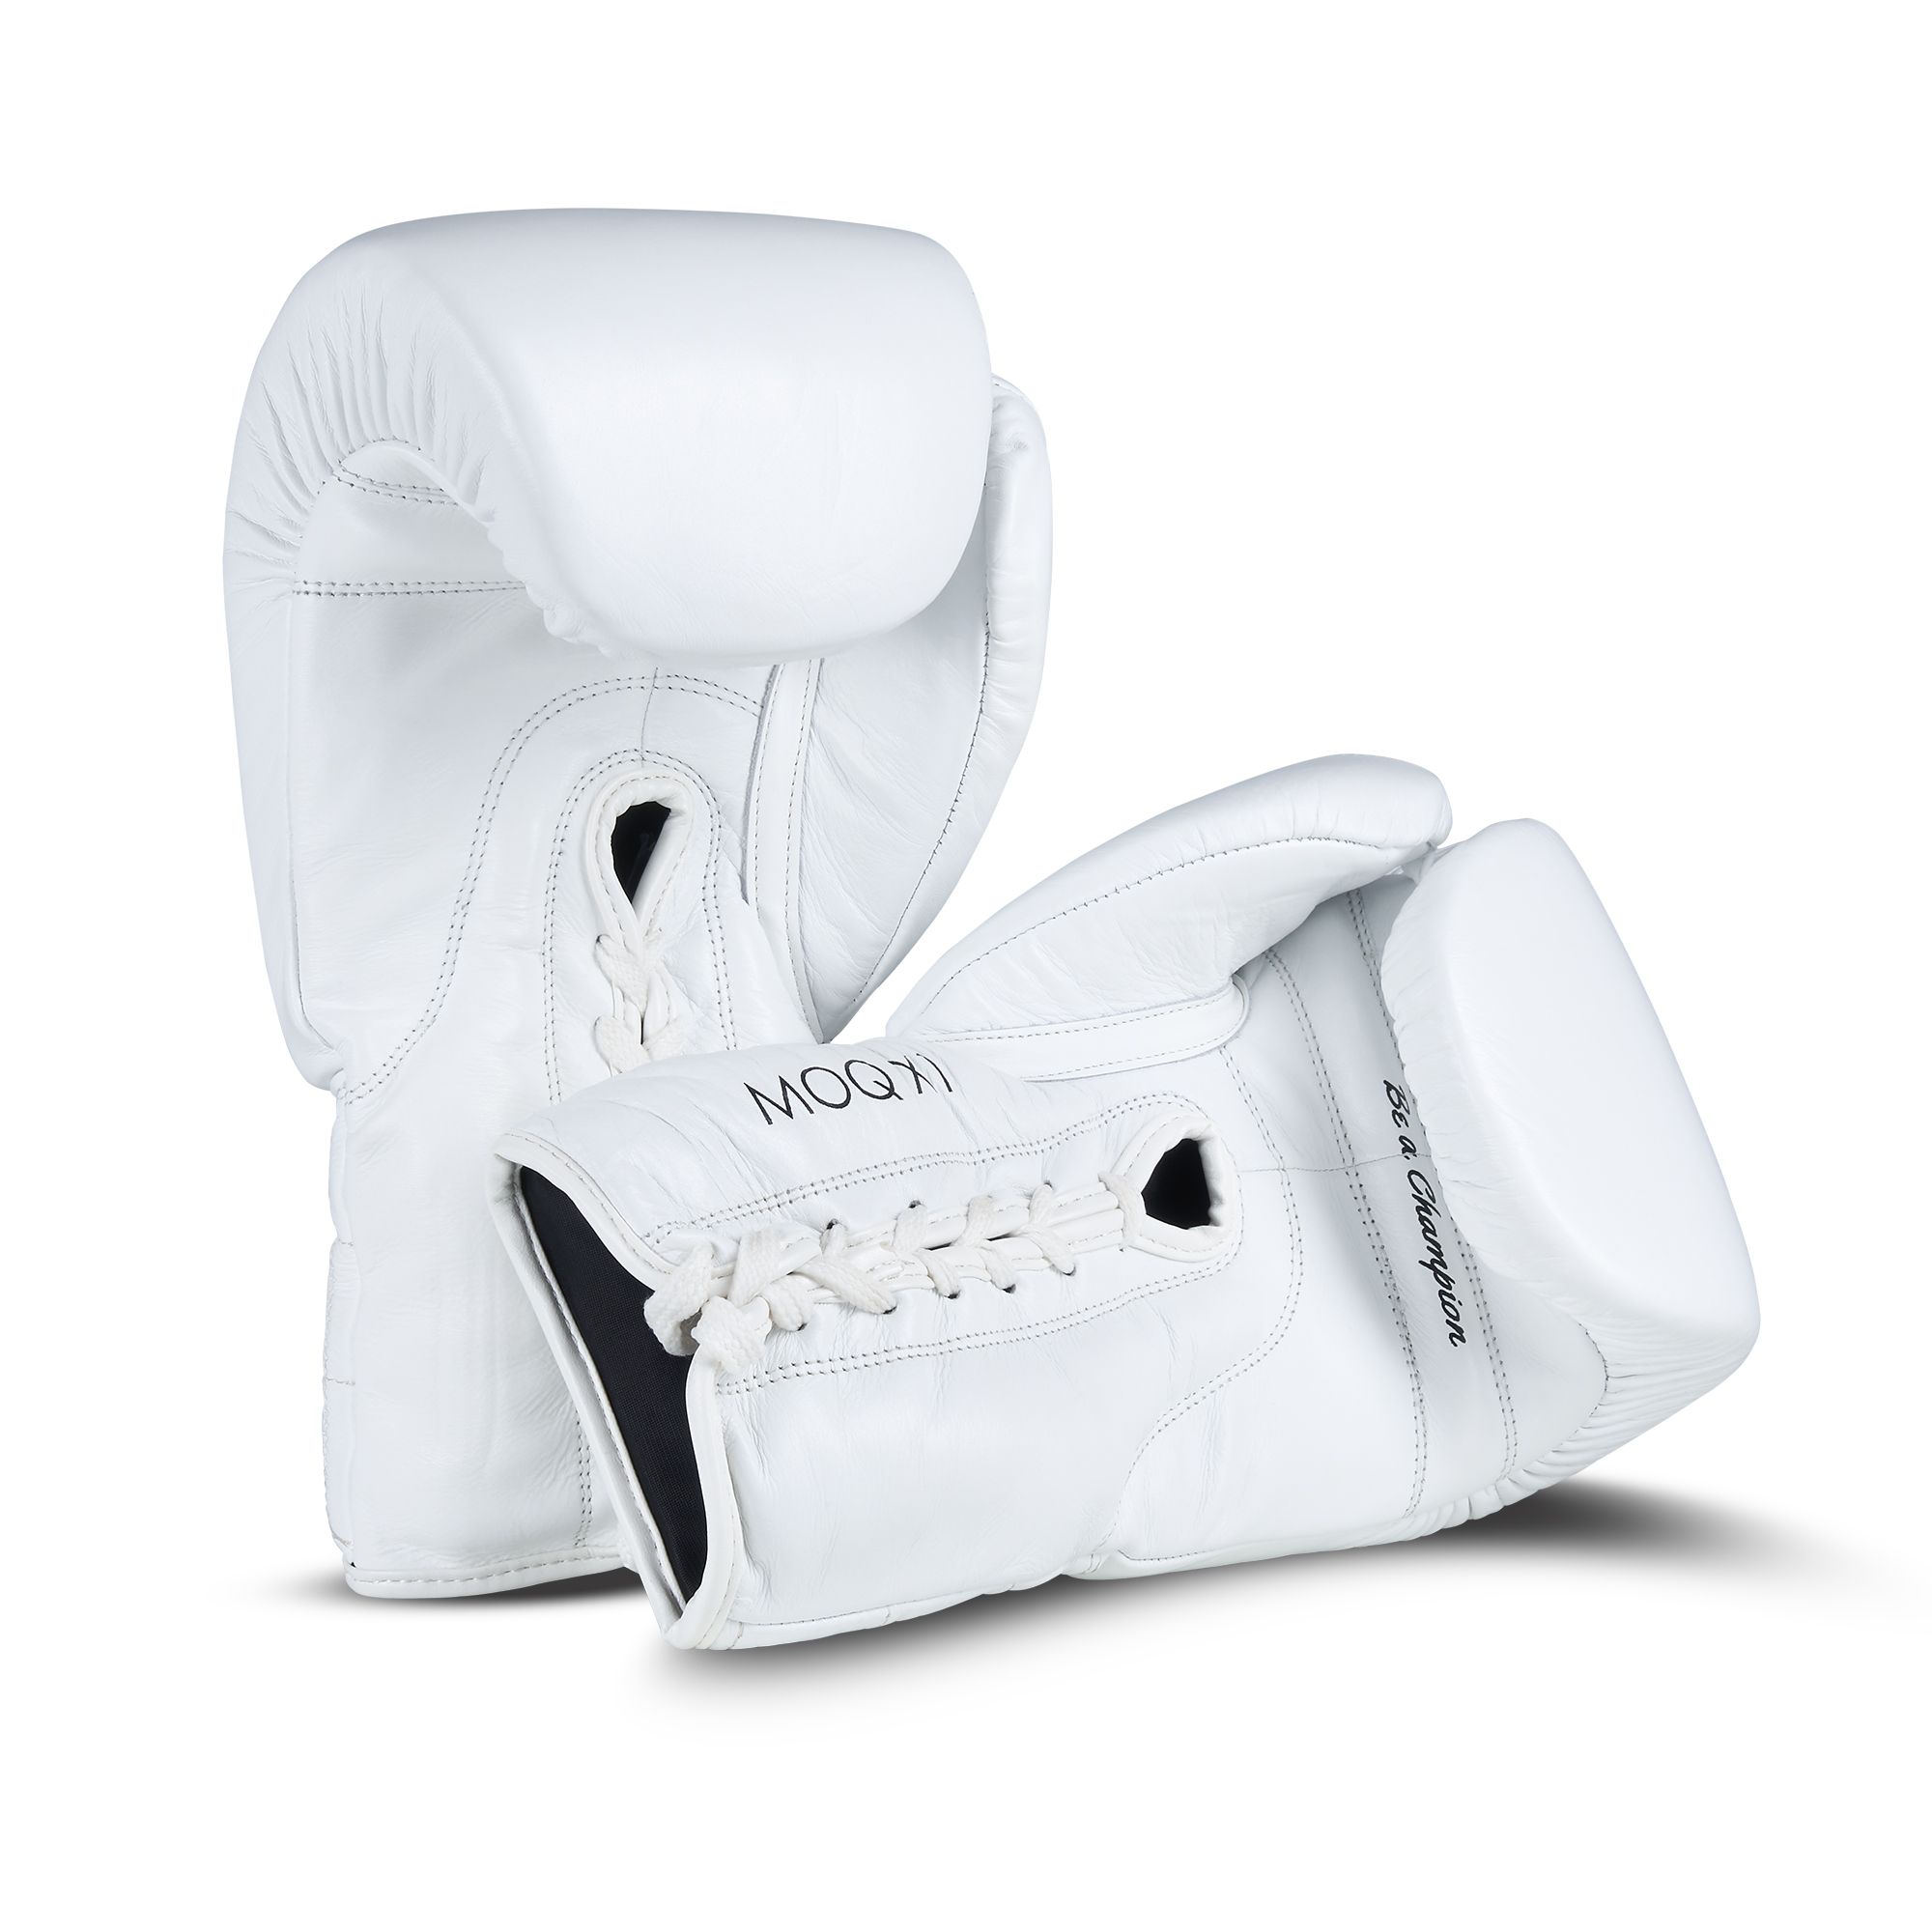 Packshot image of white boxing gloves product on white background by photographer Ian Knaggs